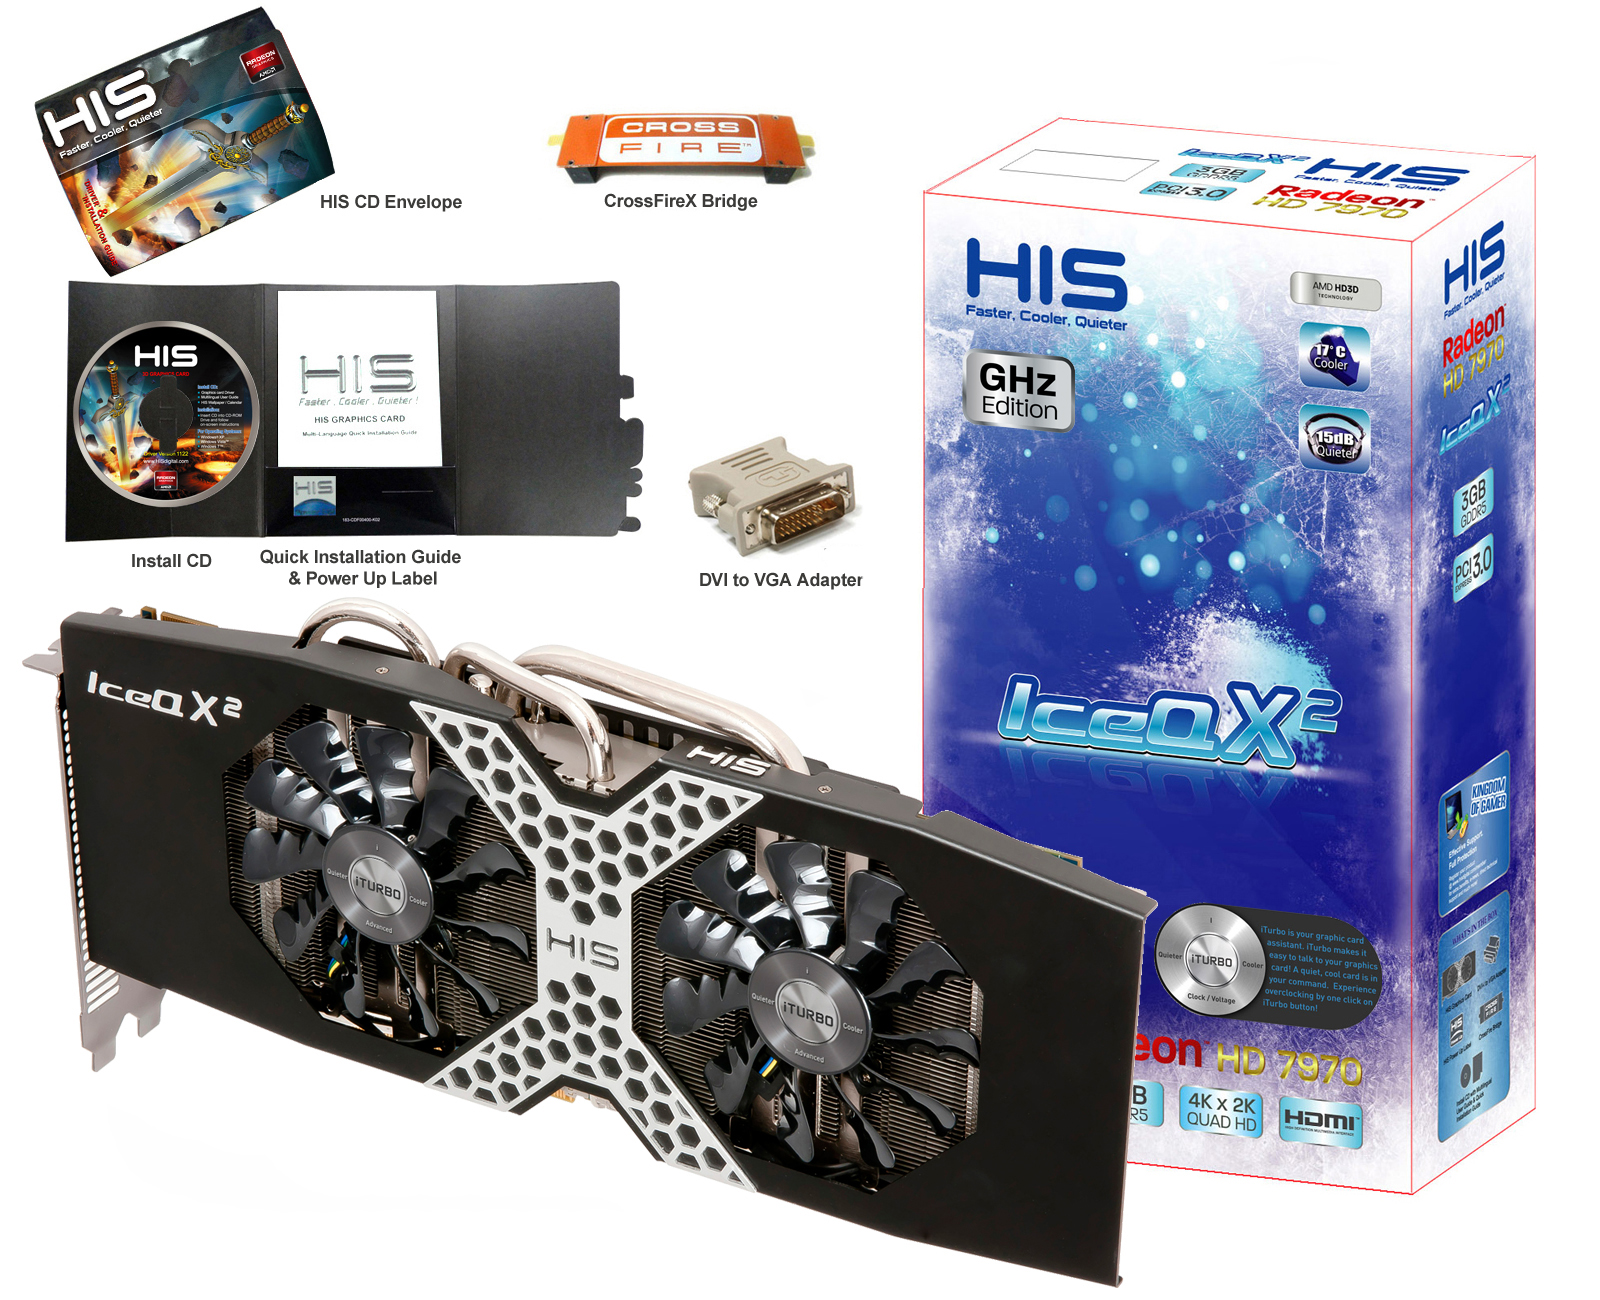 HIS 7970 IceQ X GHz Edition 3GB GDDR5